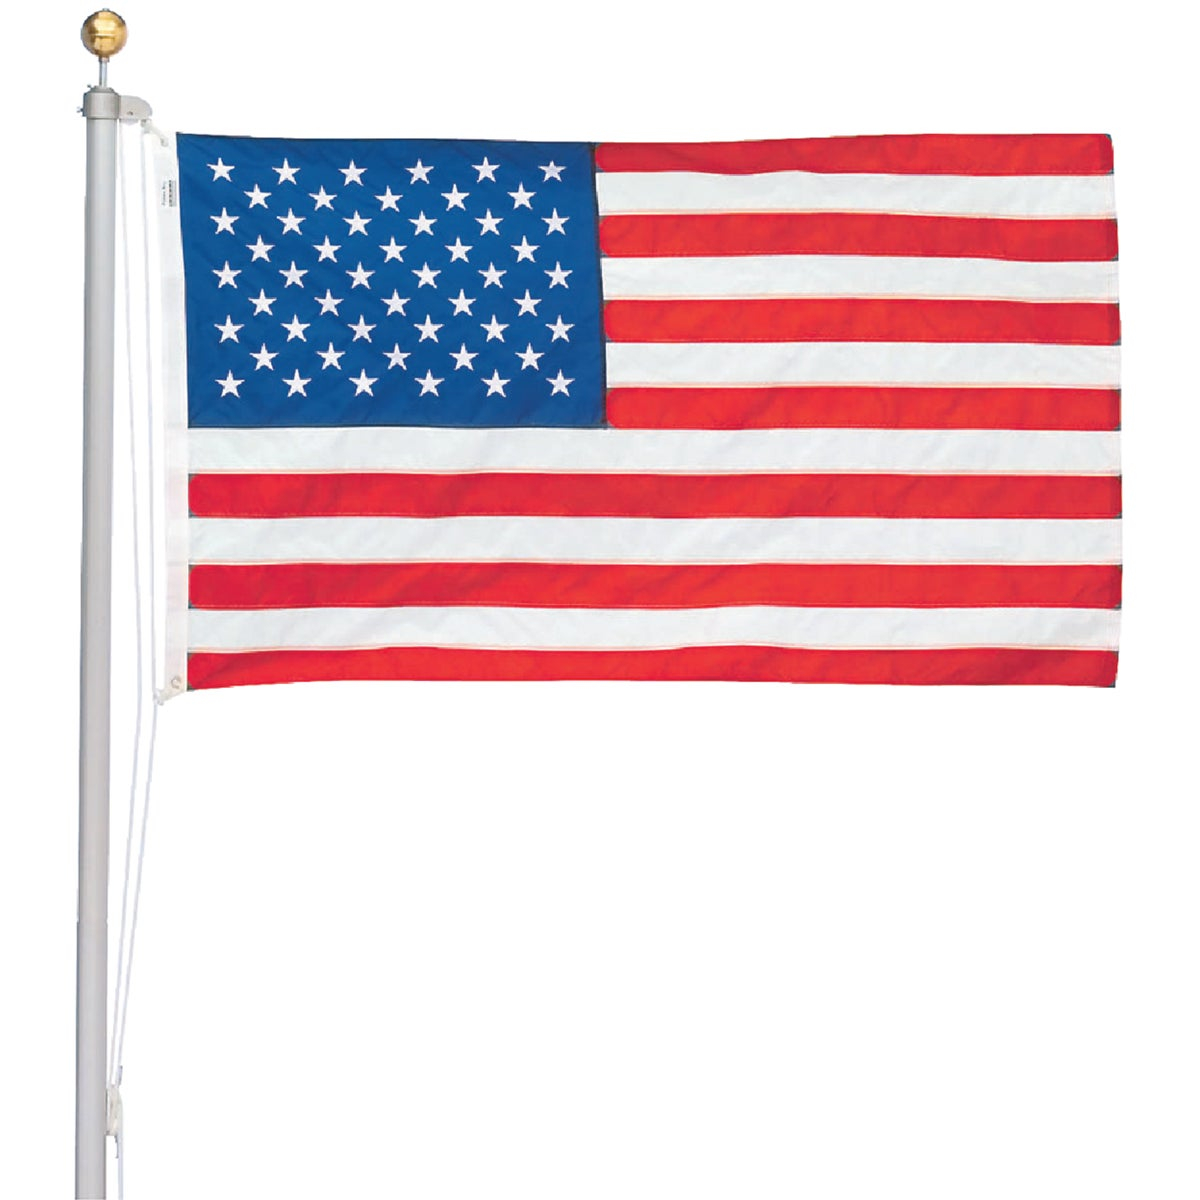 20' ALUM FLAG POLE KIT - AFP20F by Valley Forge Flag